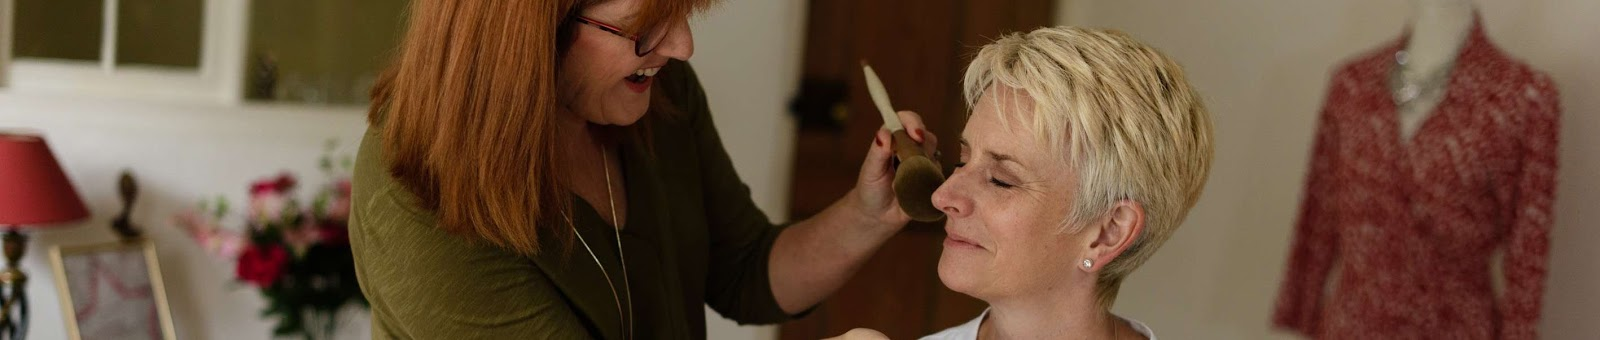 Make Up Consultant Rutland & Leicestershire